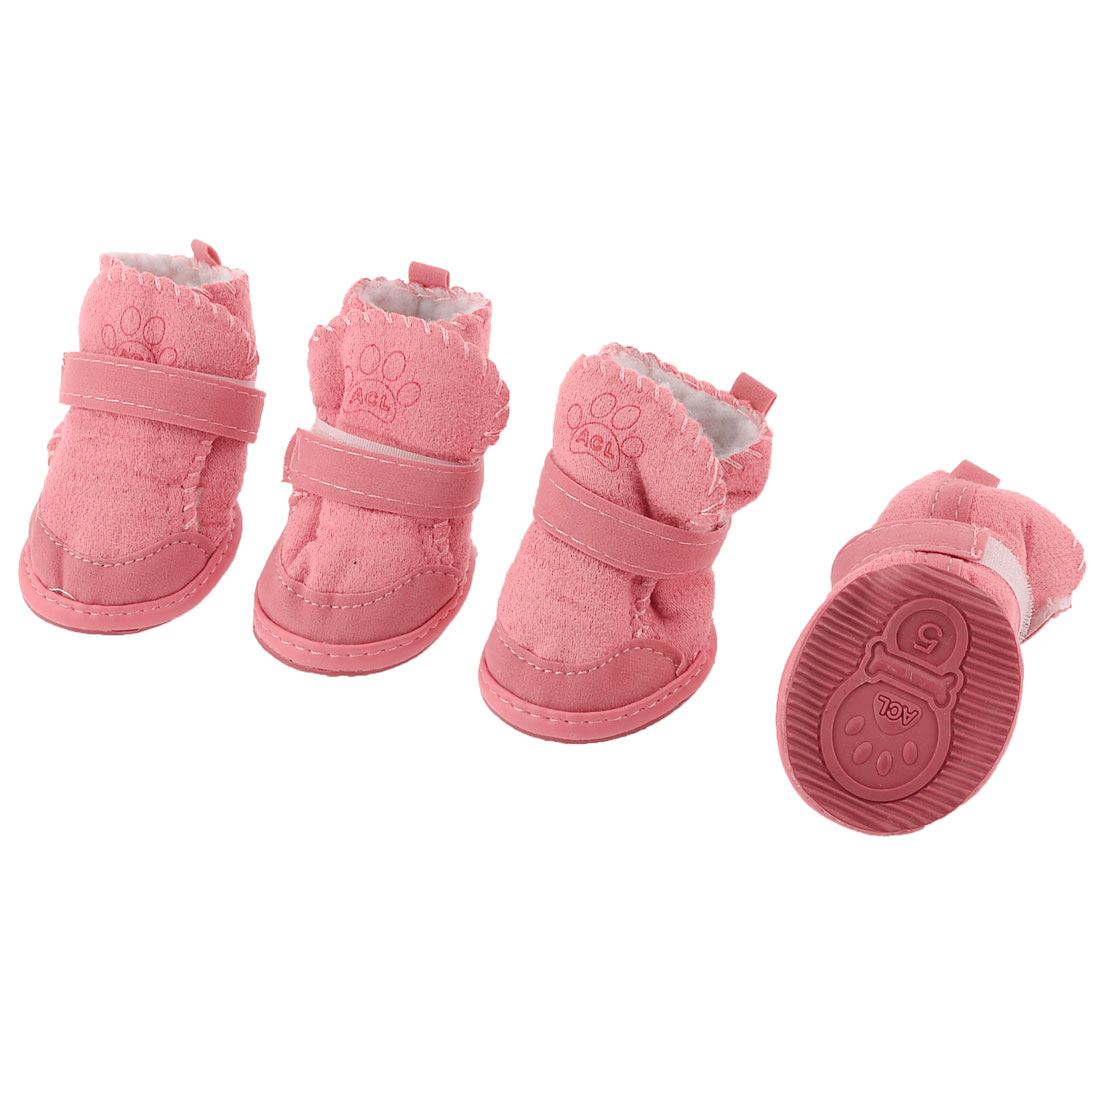 2 Pairs Pink Winter Warm Paw Pattern Detachable Closure Pet Dog Puppy Shoes S